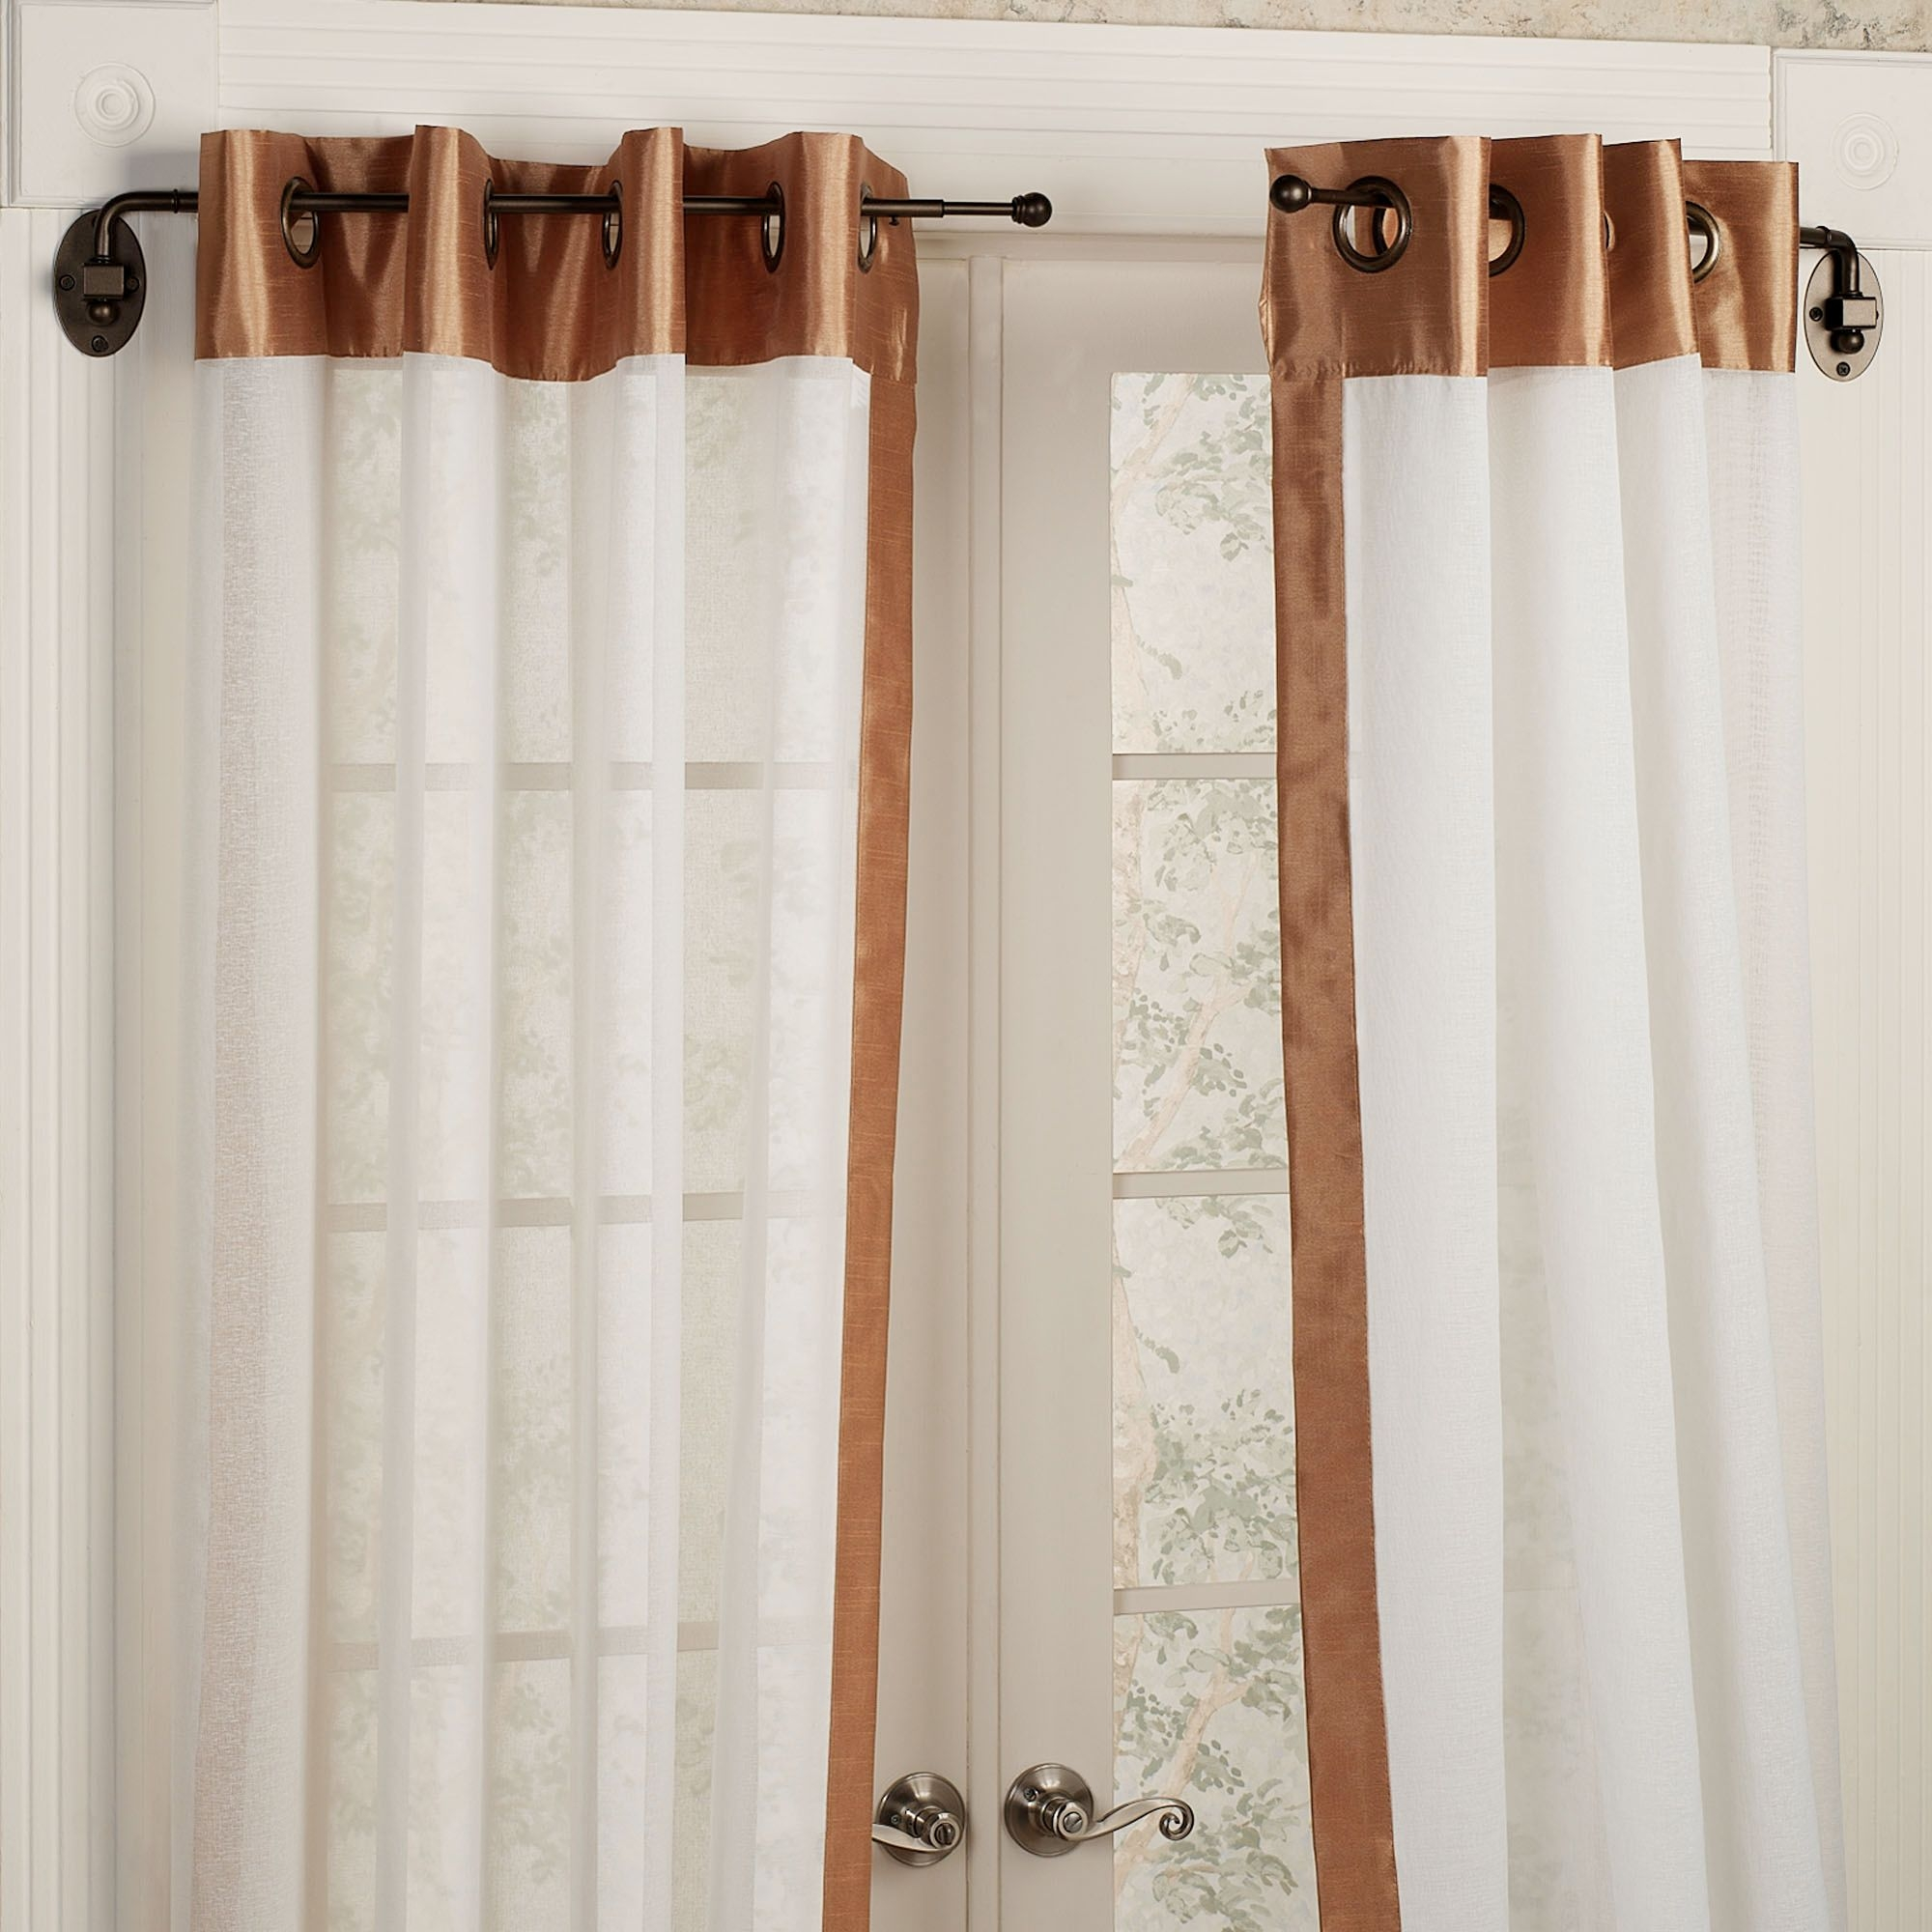 Bathroom Cool Walmart Shower Curtains For Cool Shower Curtain Inside Nautical Curtain Rods (Image 1 of 25)